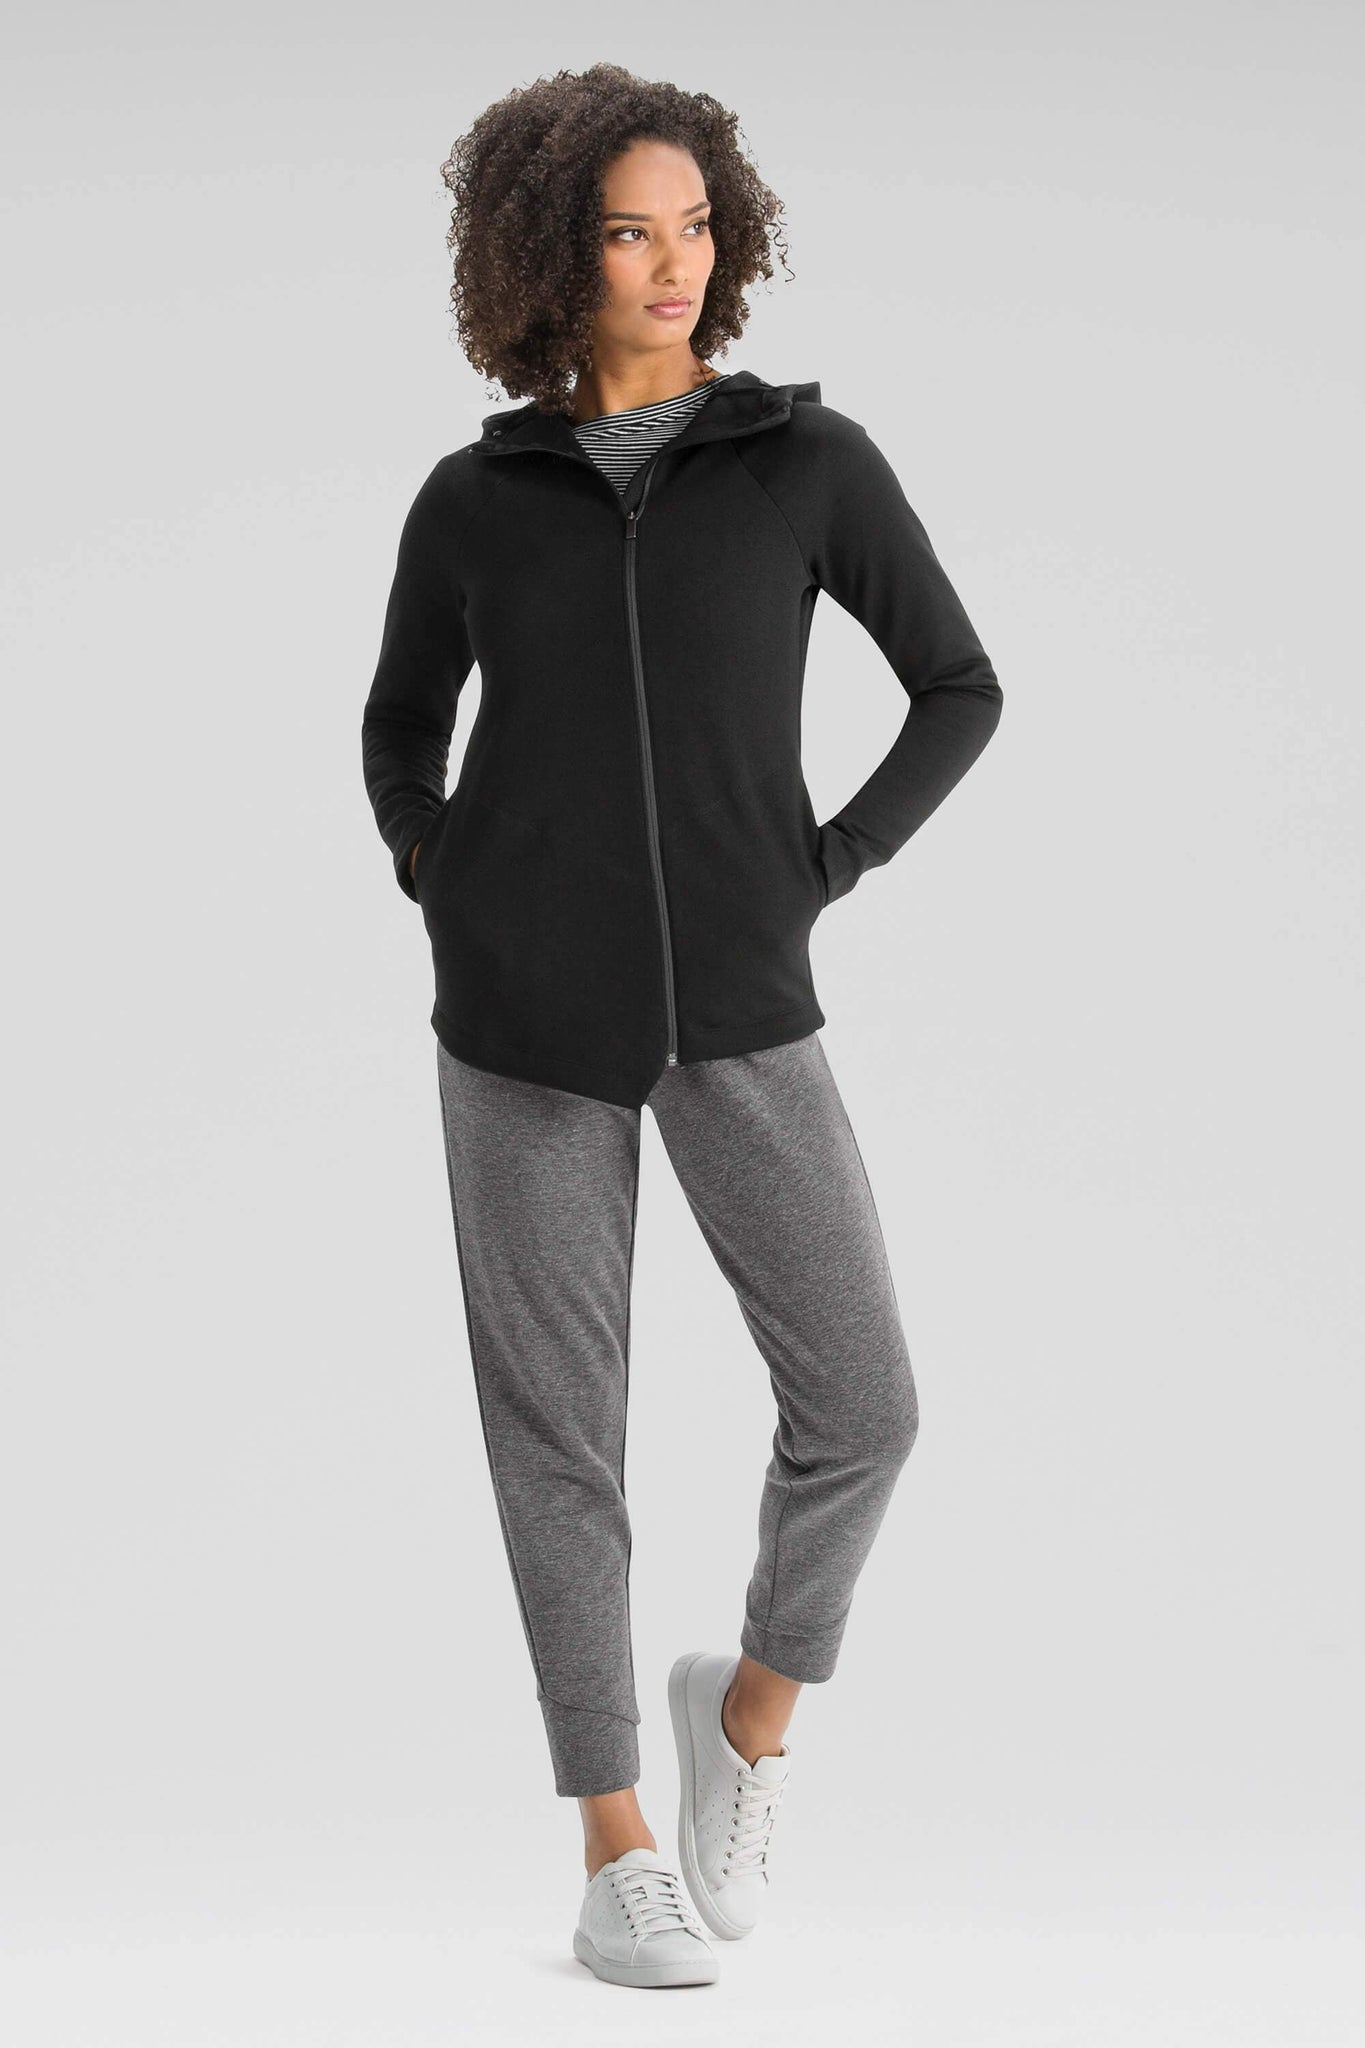 Women's Zip-up Hyperspacer Hoodie-Black